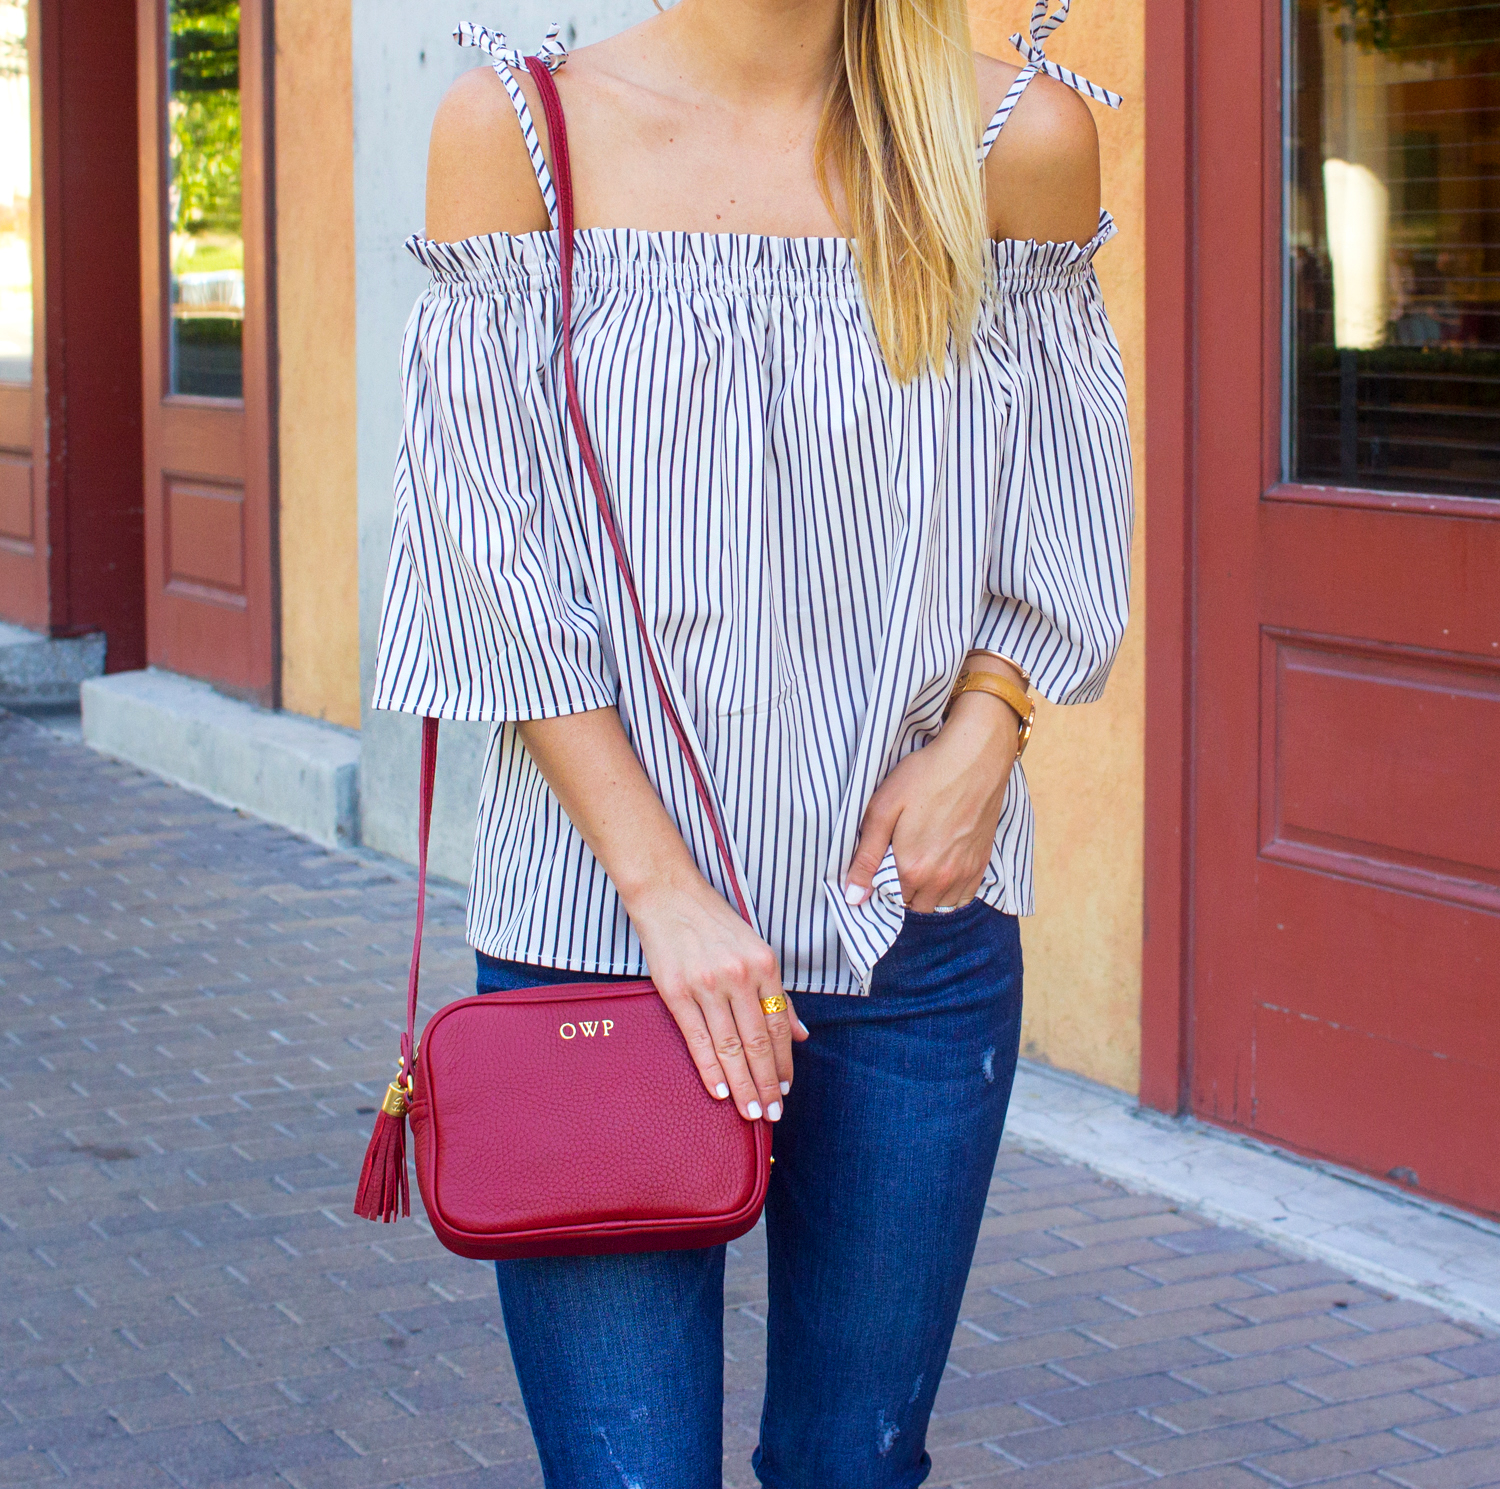 livvyland-blog-goodnight-macaroon-cold-shoulder-striped-top-austin-second-street-district-red-monogram-handbag-dl-1961-emma-jeans-11